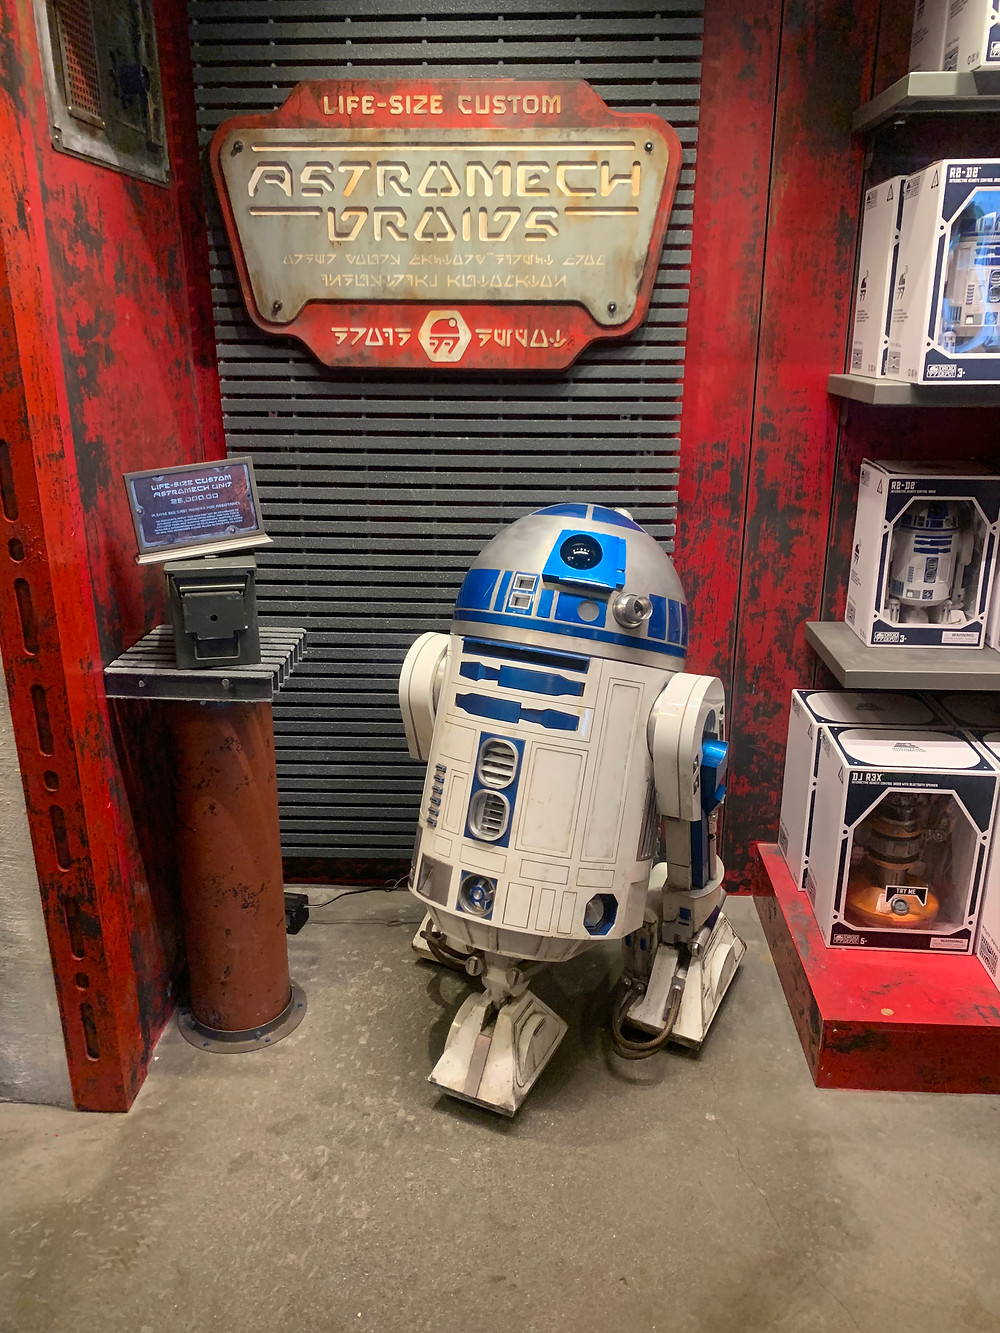 Life size version of R2D2 from Star Wars. Blue, silver and white astromech droid